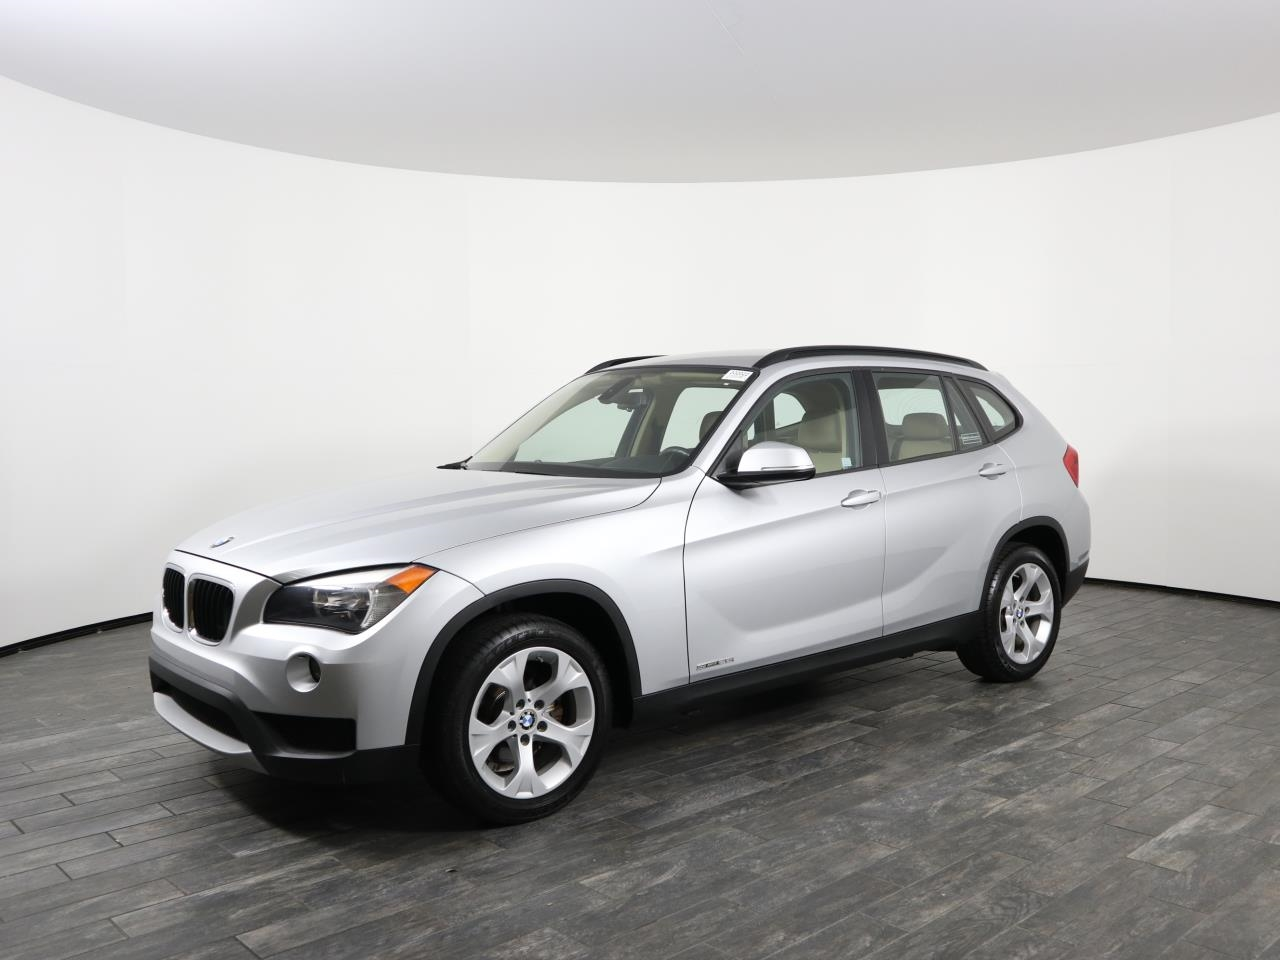 2014 BMW X1 RWD 4dr sDrive28i 10528 miles 2 Seatback Storage Pockets 3 12V DC Power Outlets LEA